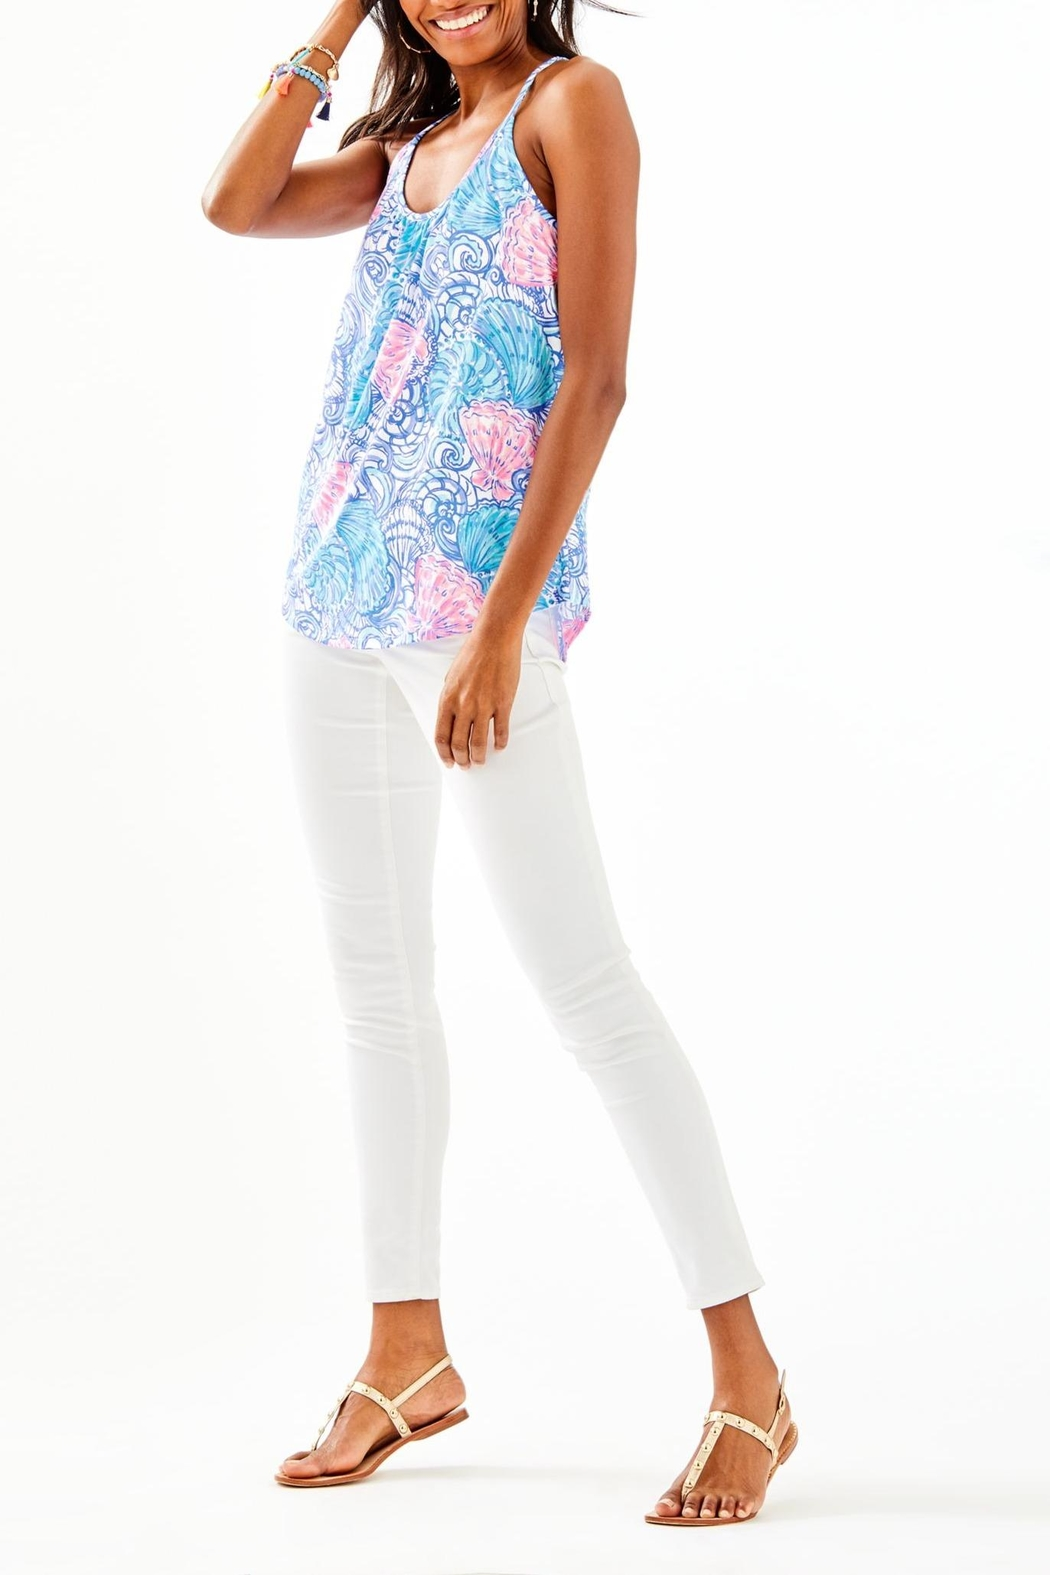 Lilly Pulitzer Lacy Top - Side Cropped Image